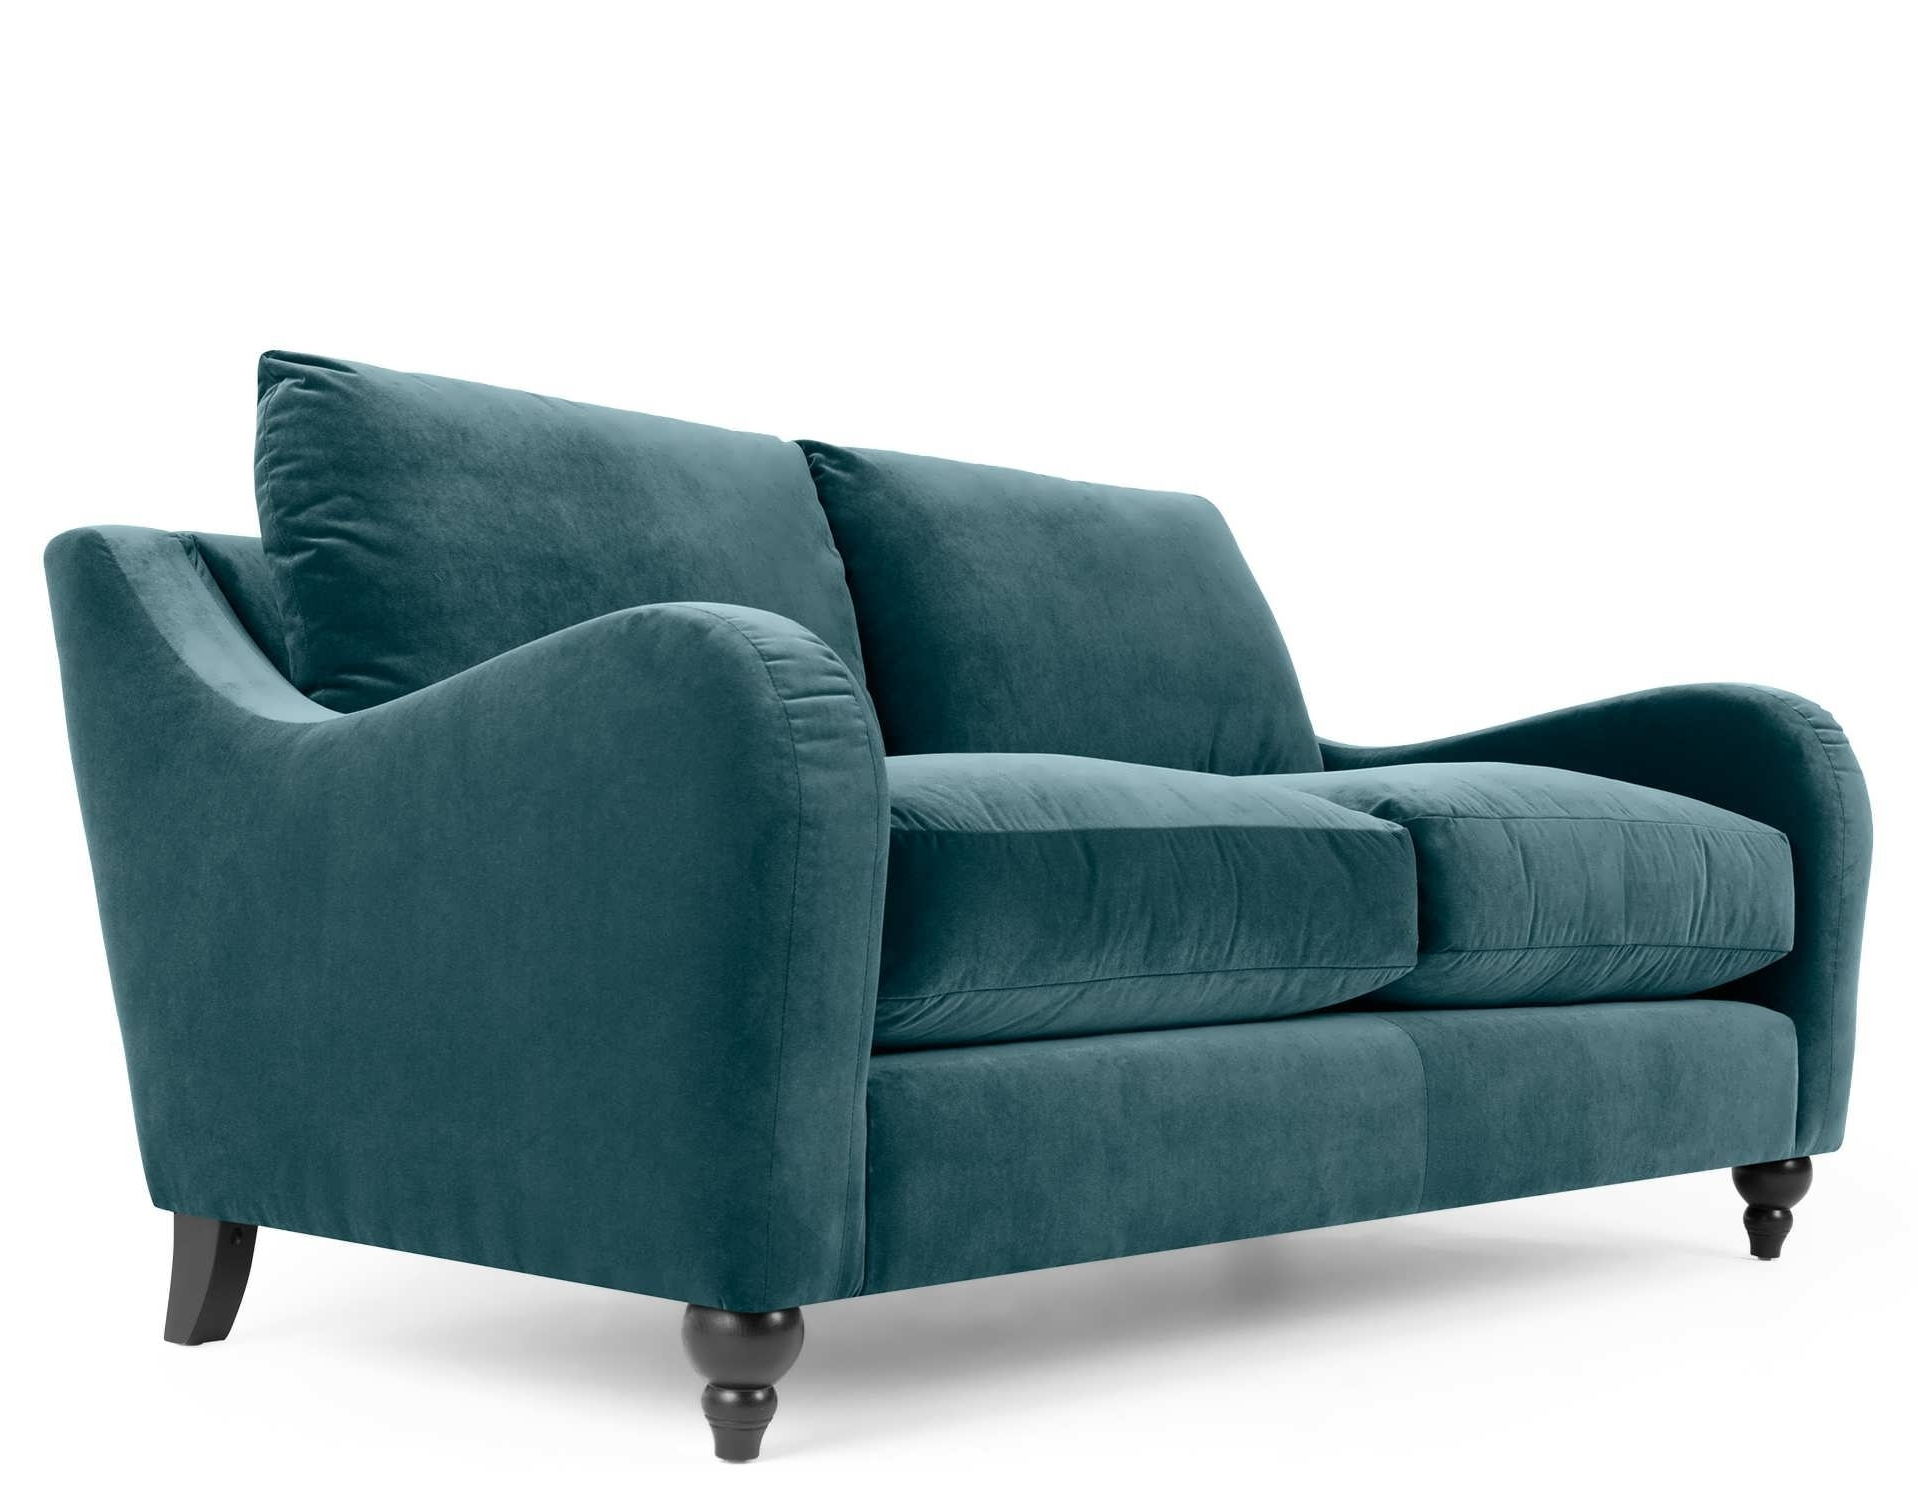 Trendy Sofa : Modern Couches Lounge Seating Fancy Couch Chaise Lounge Bed Pertaining To Chaise Couches (View 12 of 15)